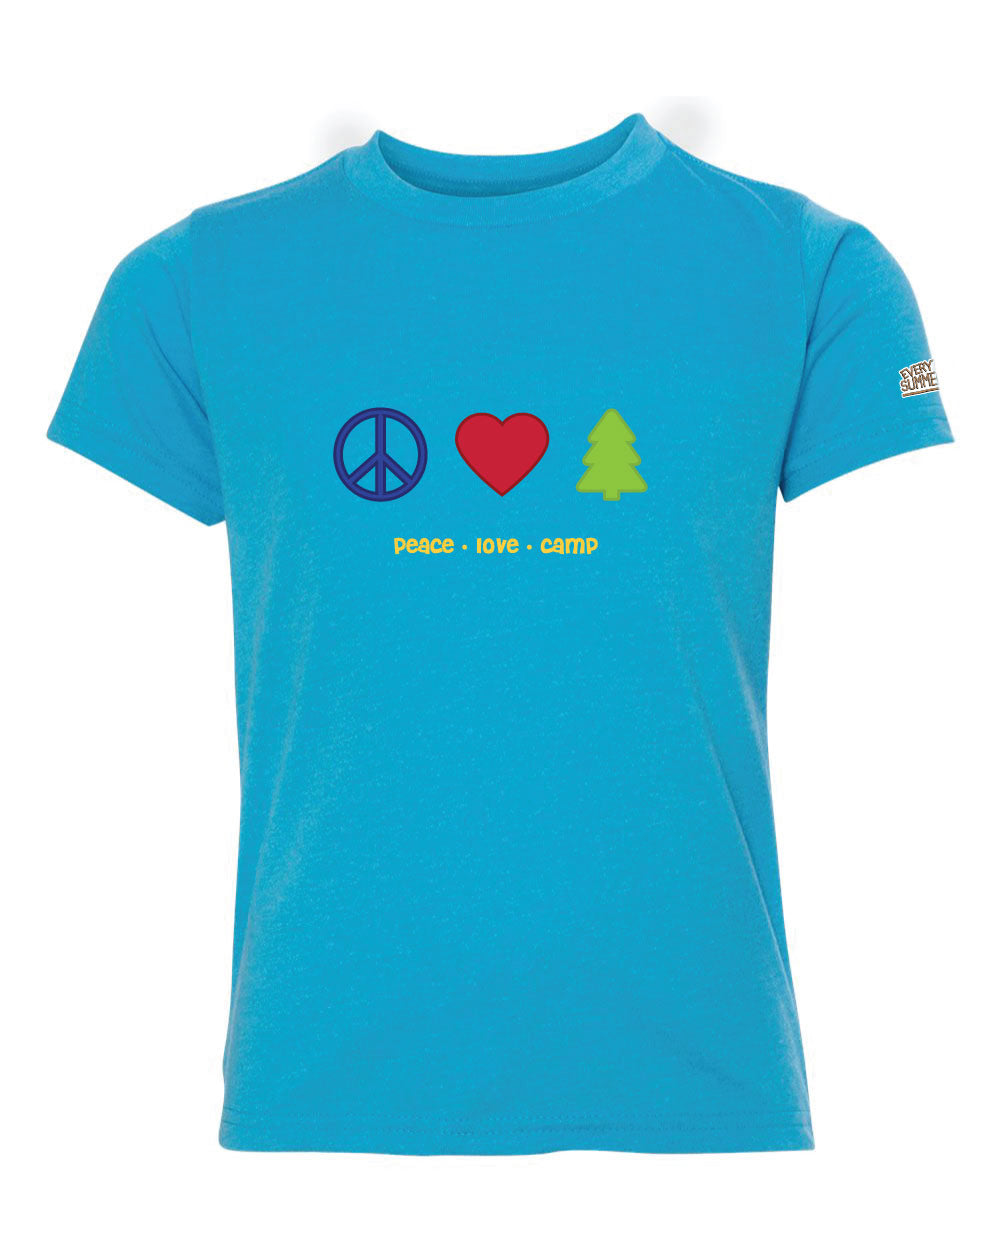 Life of Camp - Peace, Love, Camp - Tri-Blend Tee